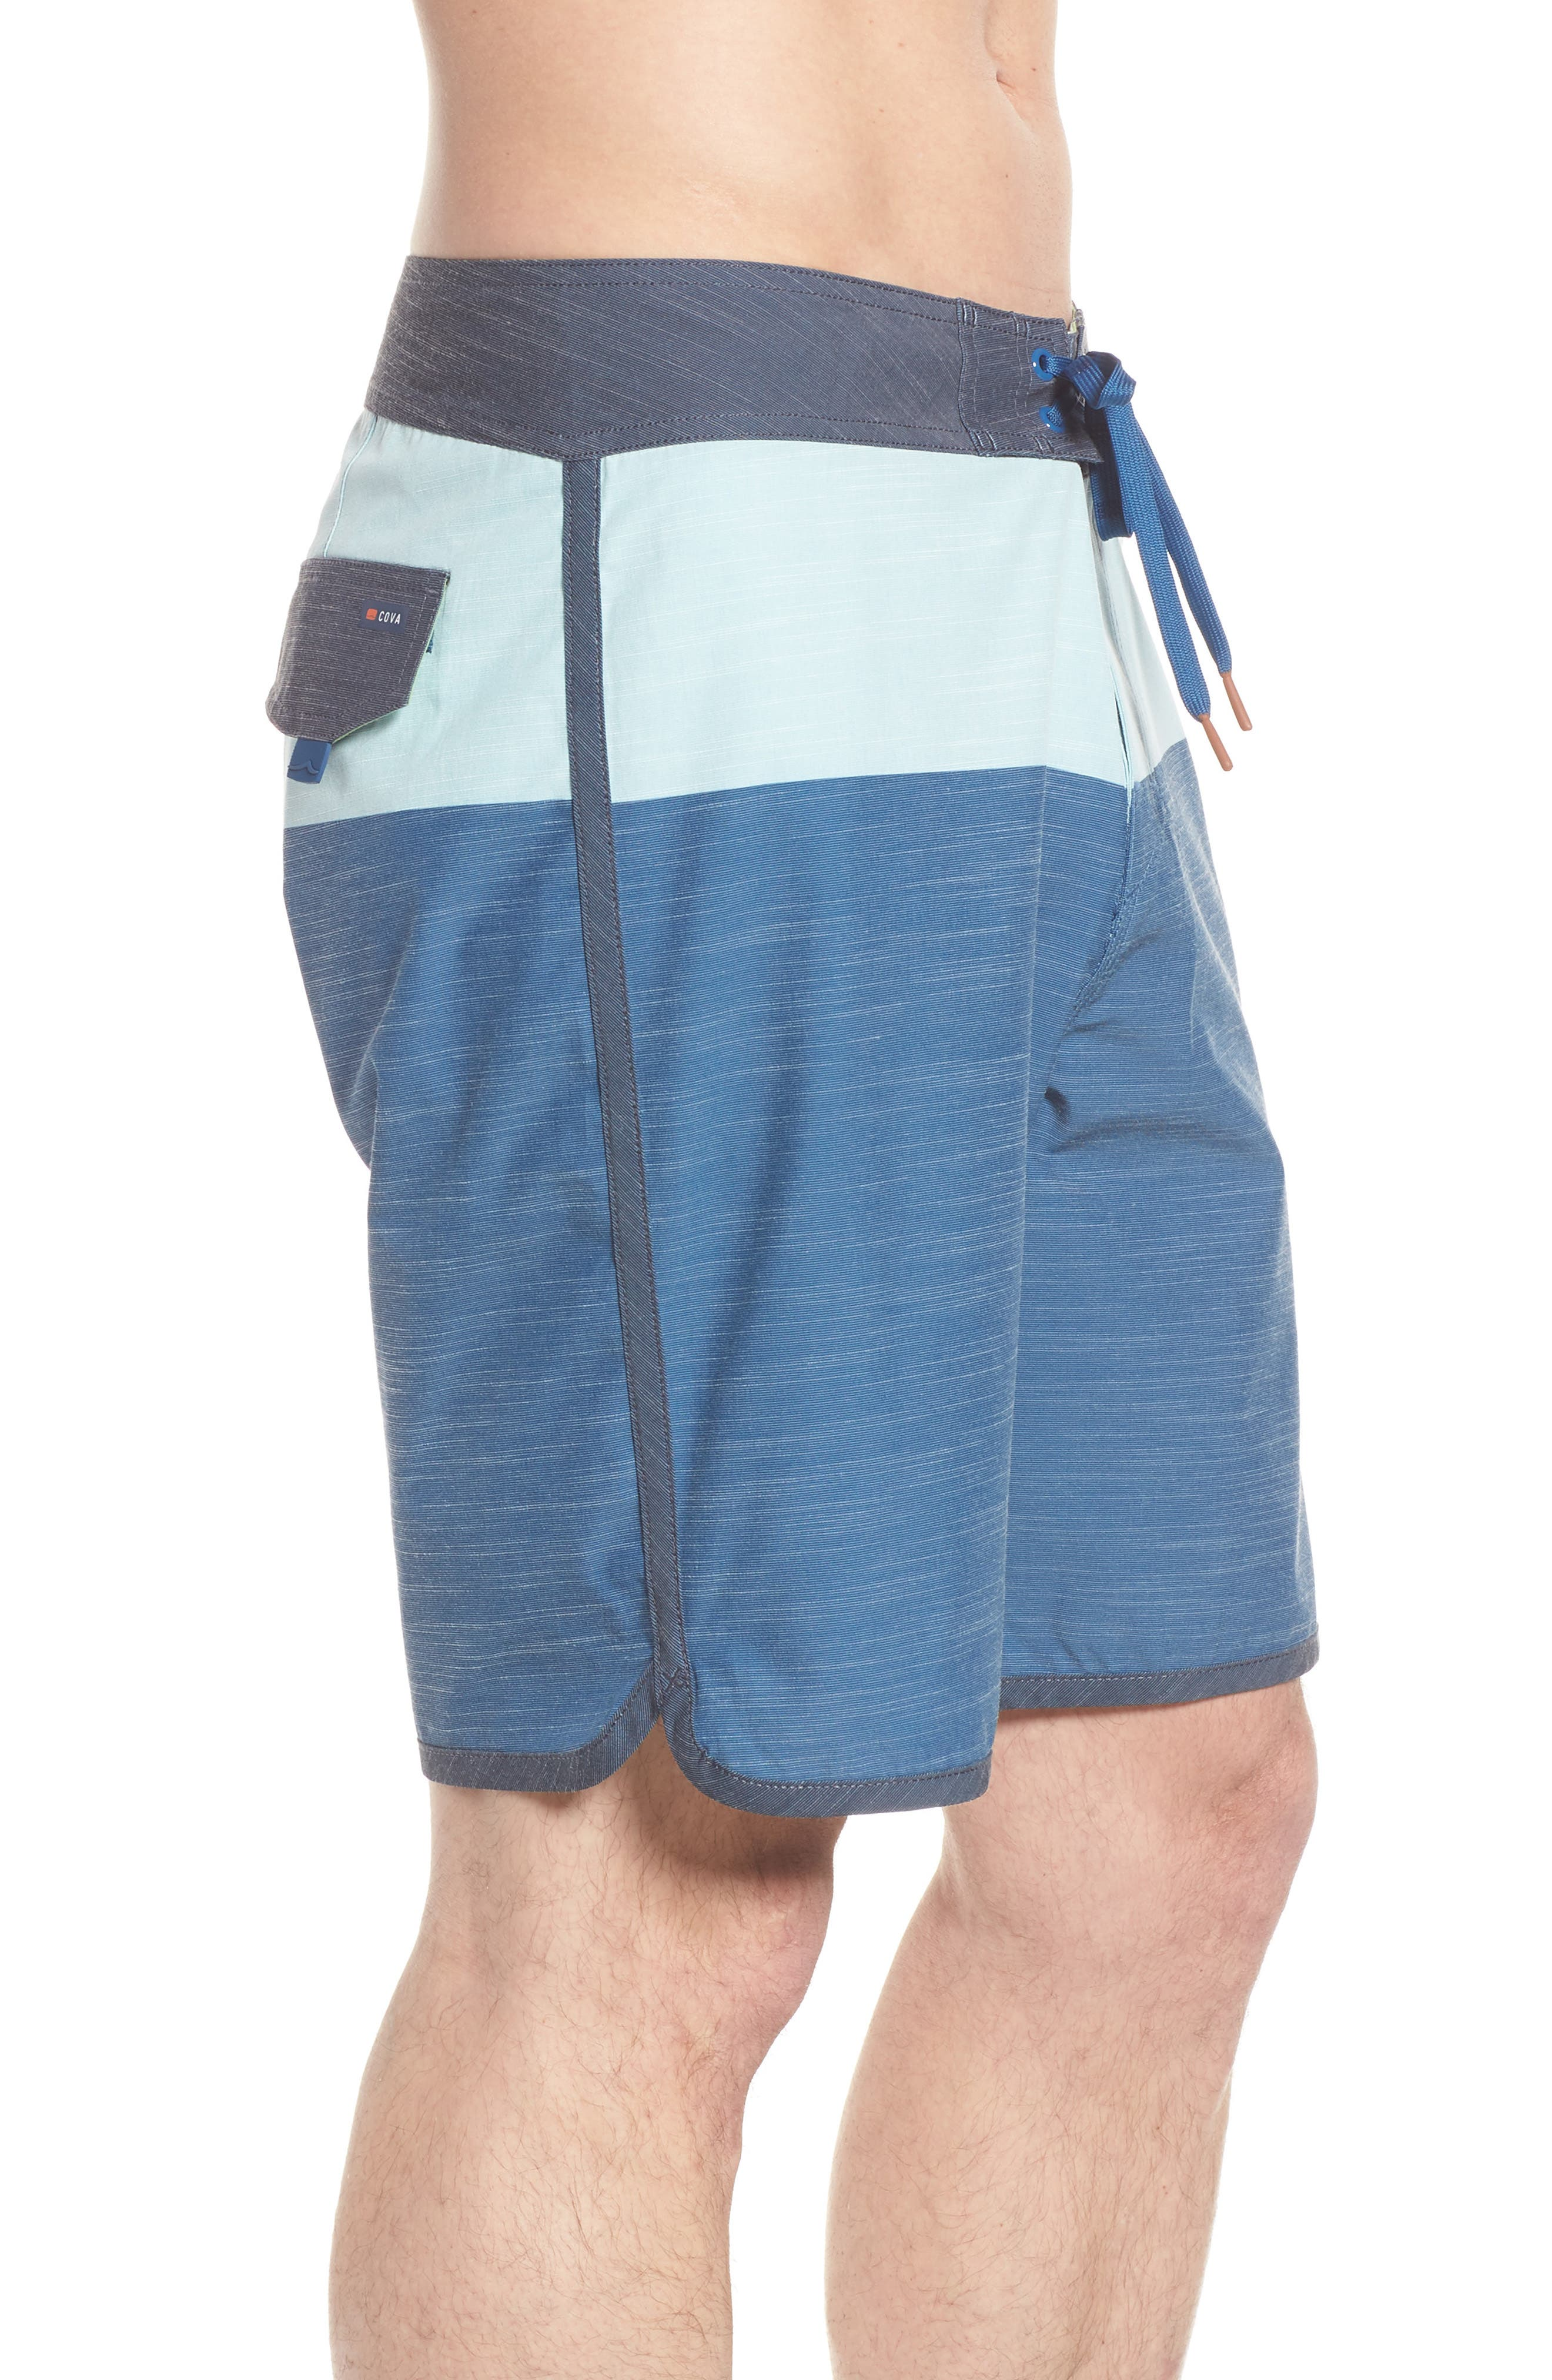 Beachcomber Board Shorts,                             Alternate thumbnail 3, color,                             423